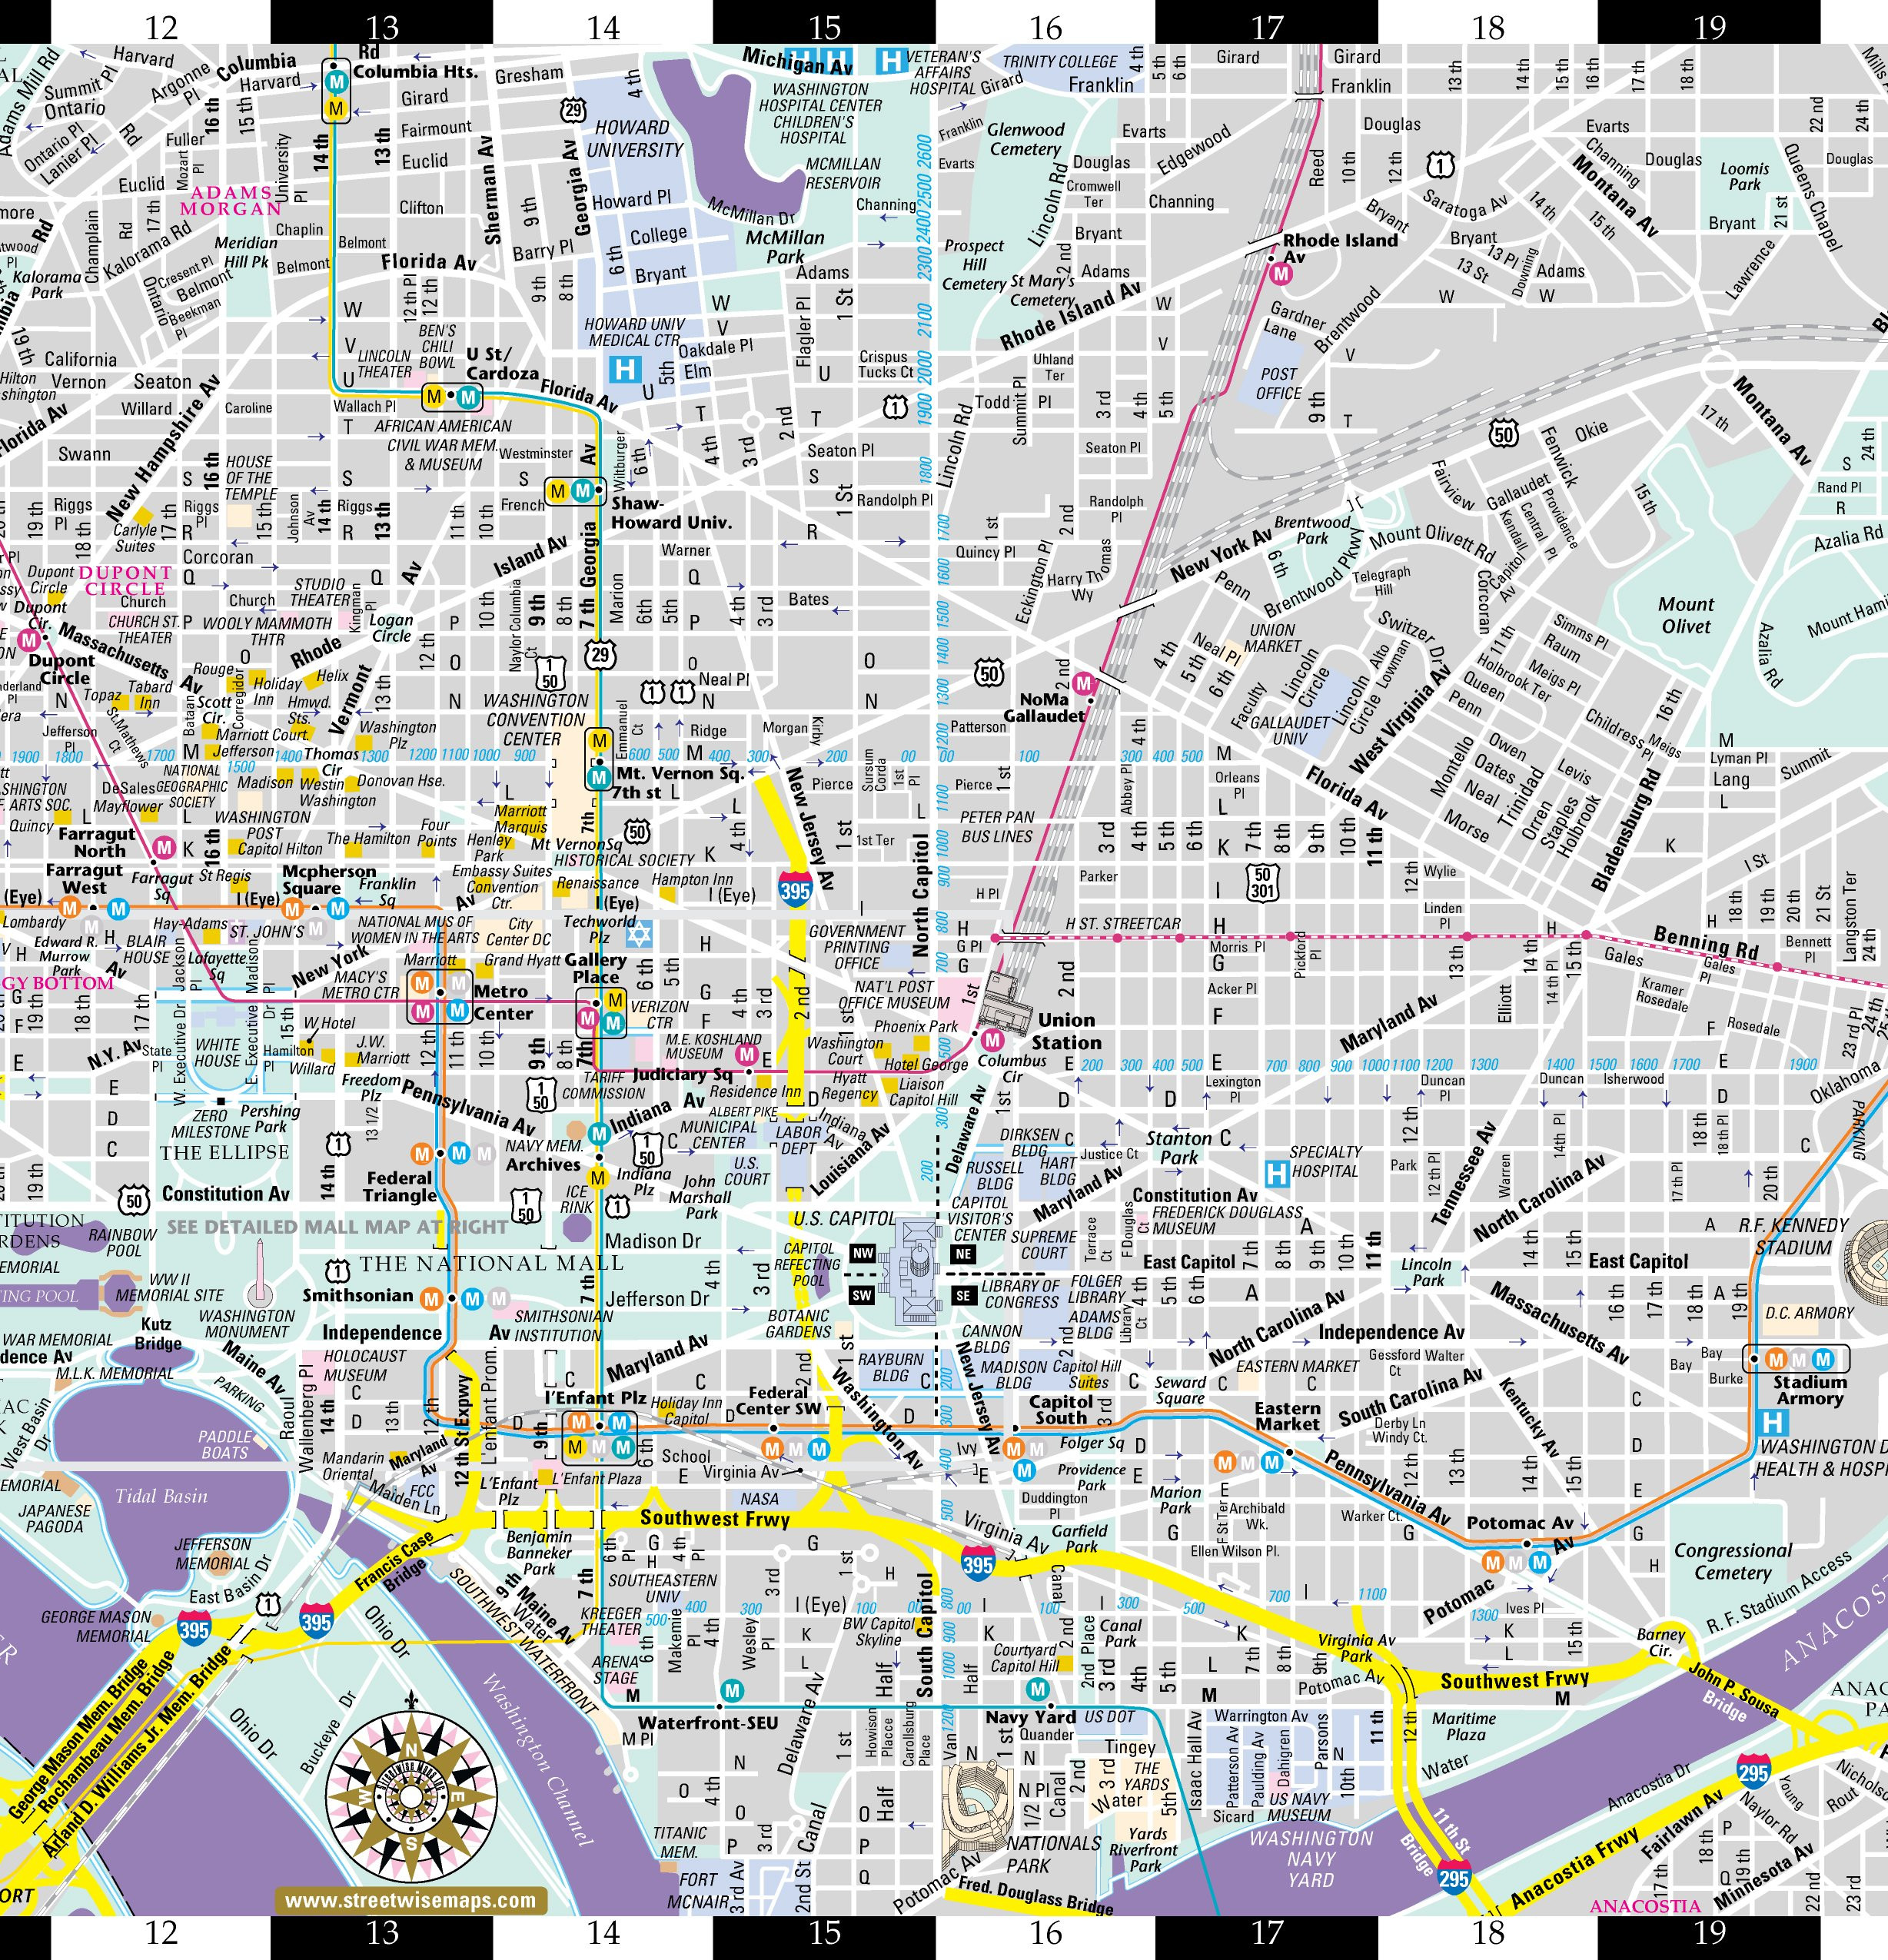 Printable Map Washington Dc New Streetwise Washington Dc Map Laminated City Center Street Map Of